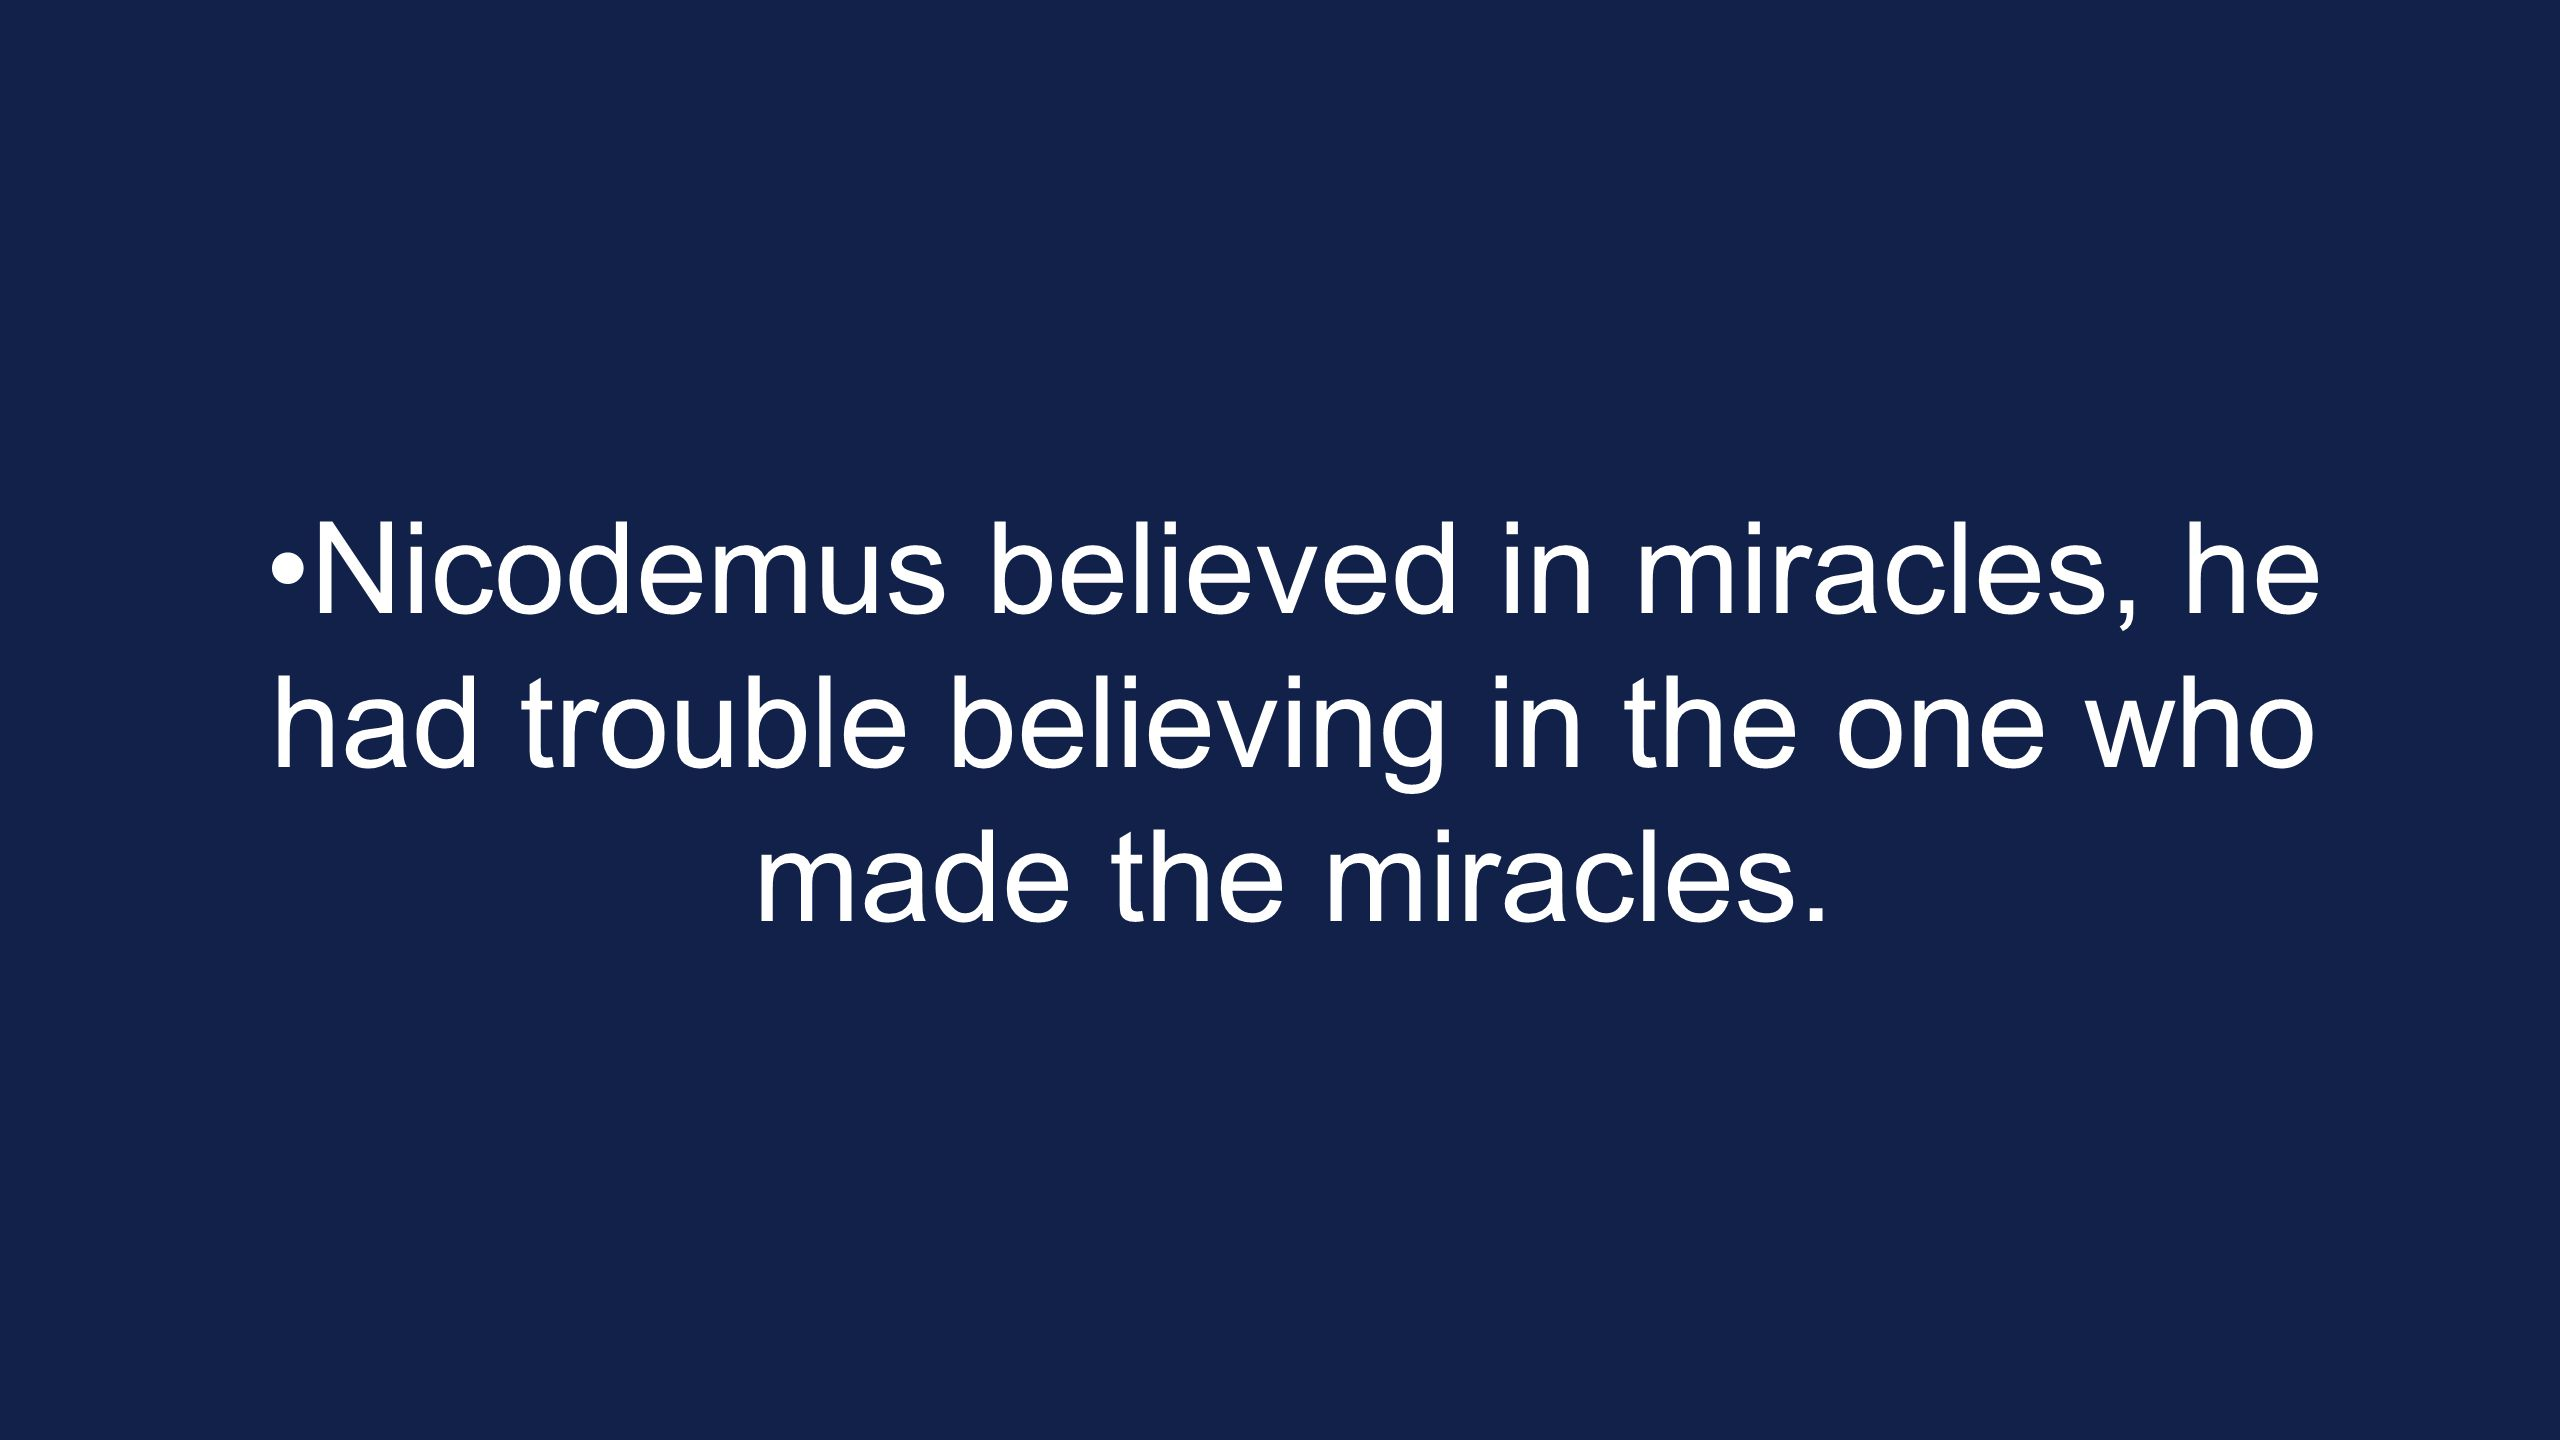 Nicodemus believed in miracles, he had trouble believing in the one who made the miracles.